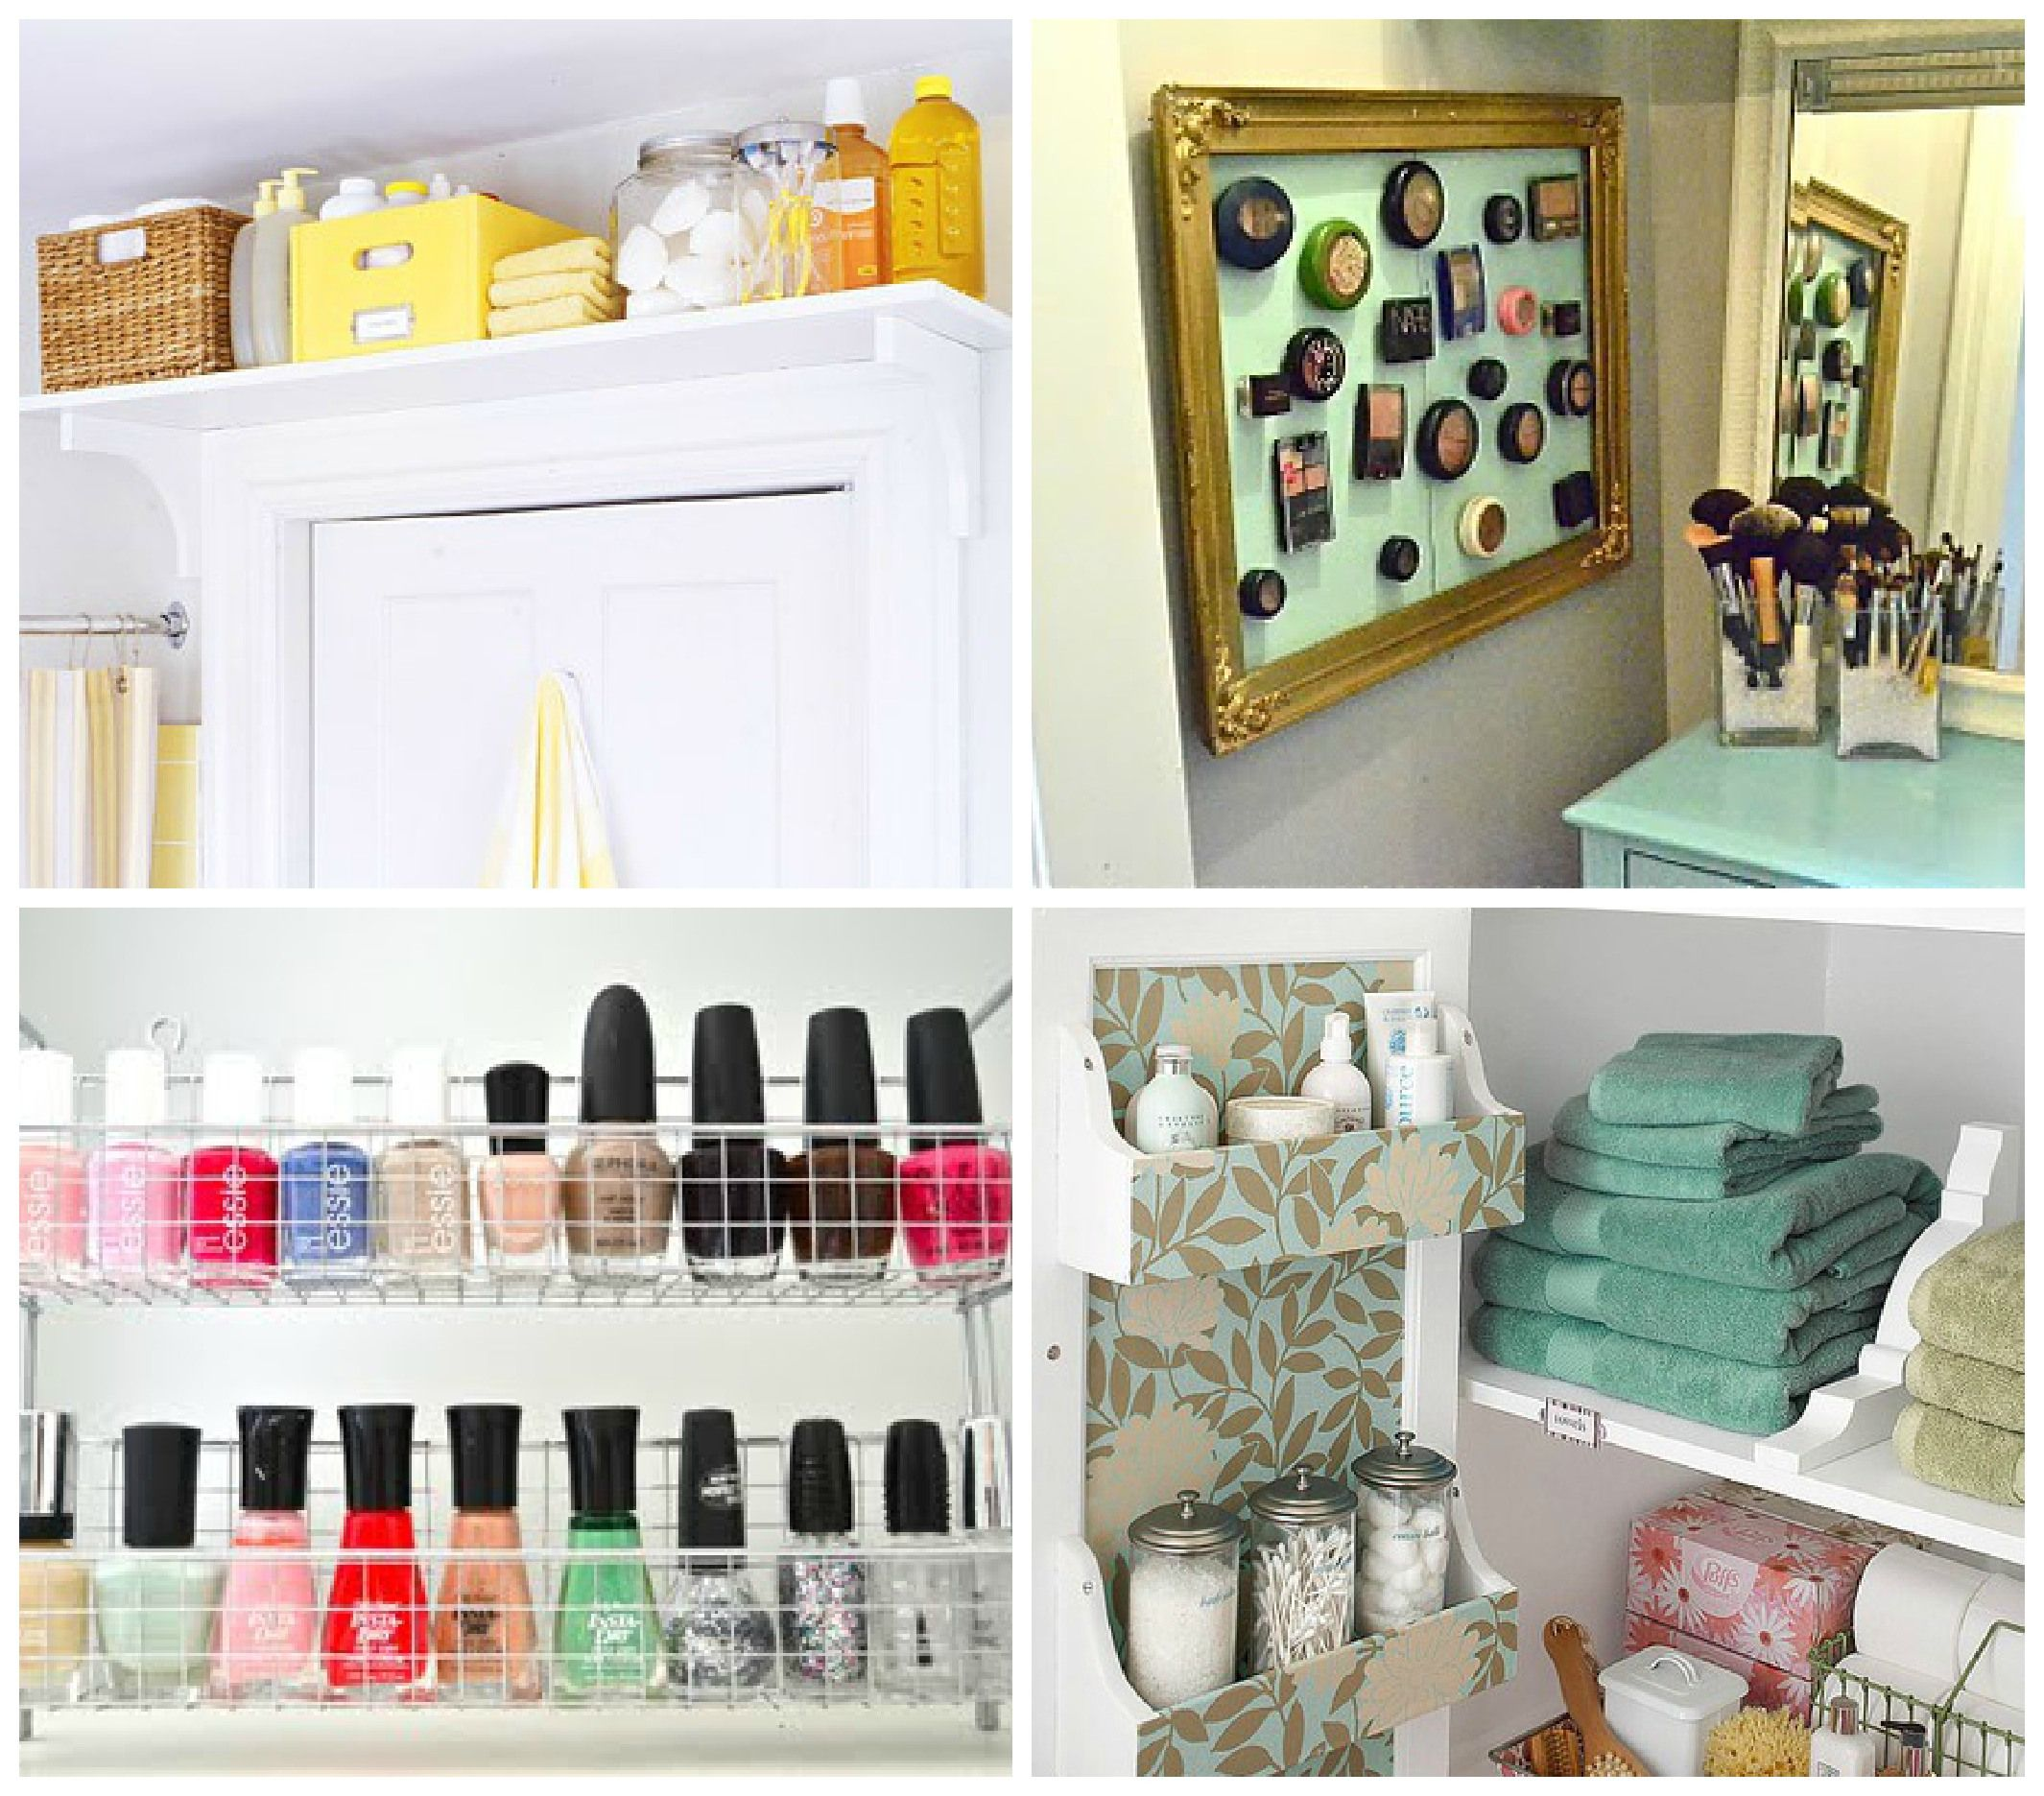 Storage ideas for small spaces - particularly like the over door shelves & hanging baskets.